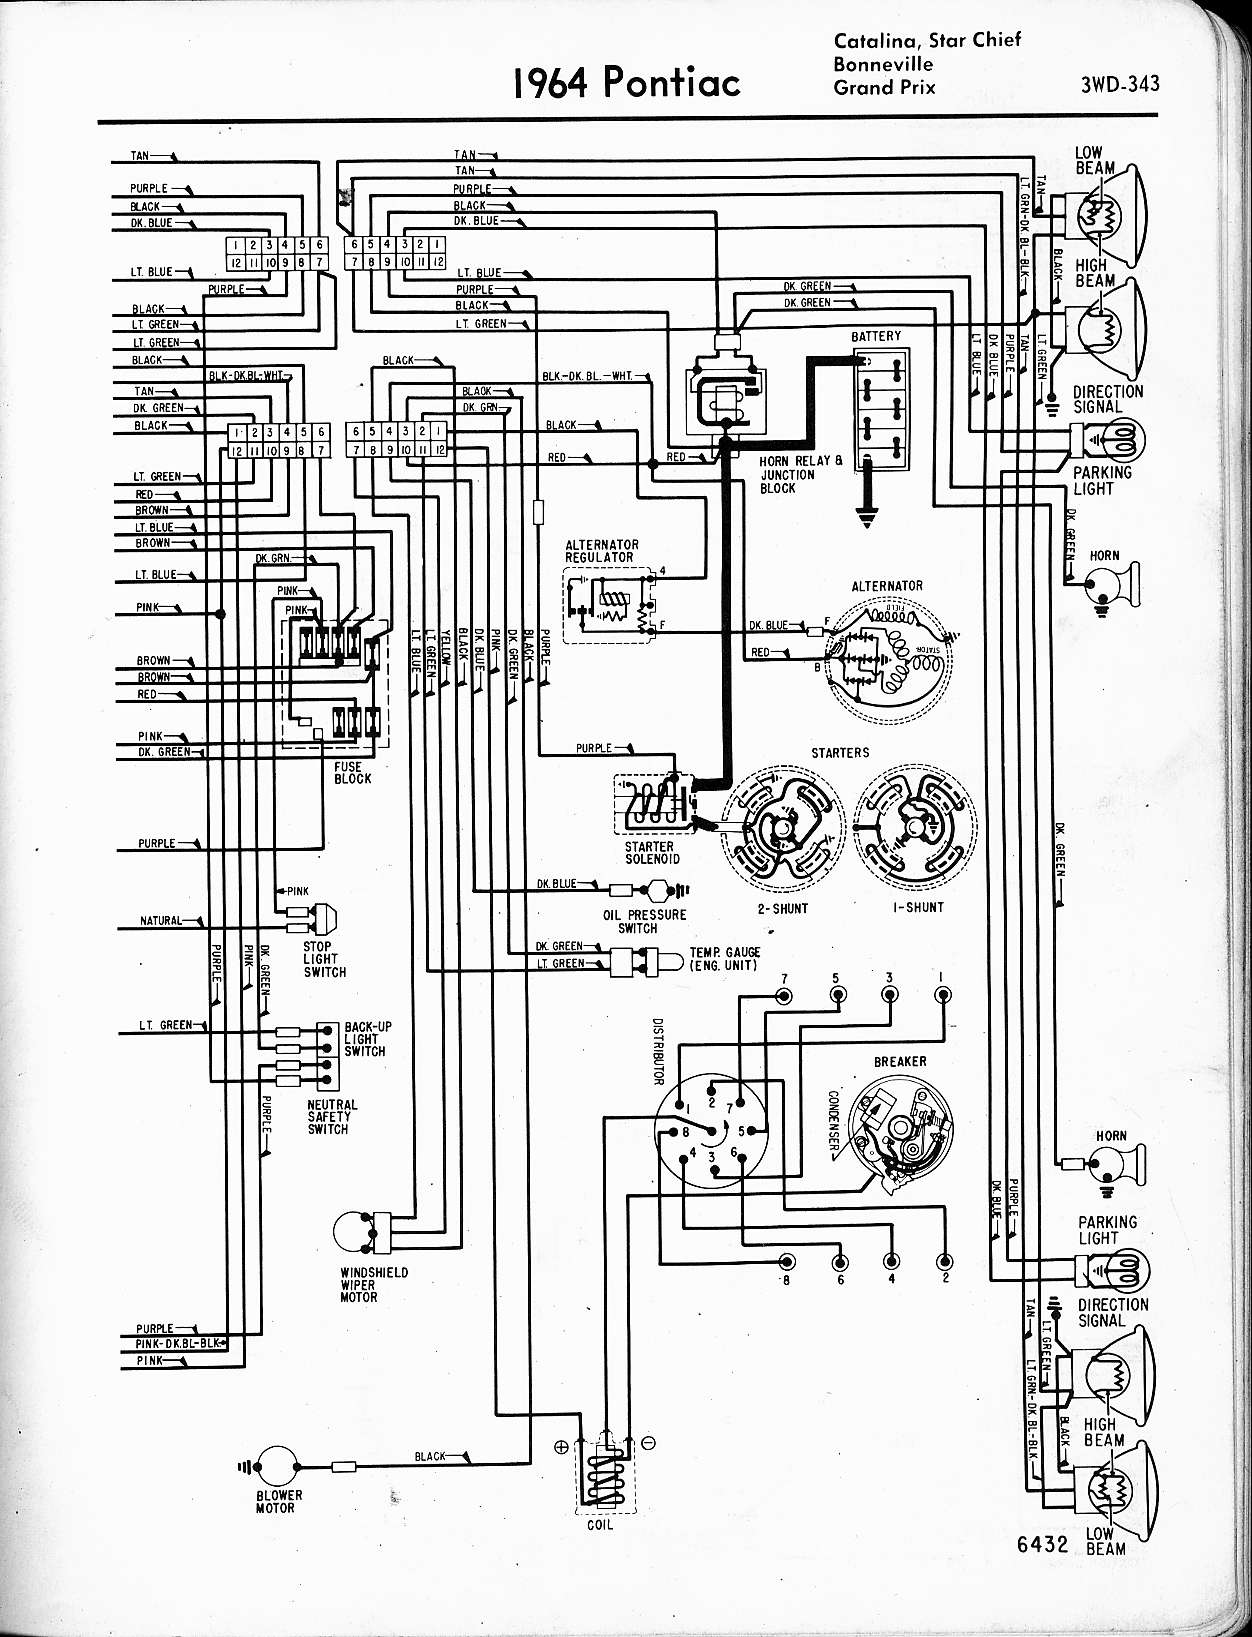 MWire5765 343 wallace racing wiring diagrams pontiac gto wiring diagram at gsmx.co